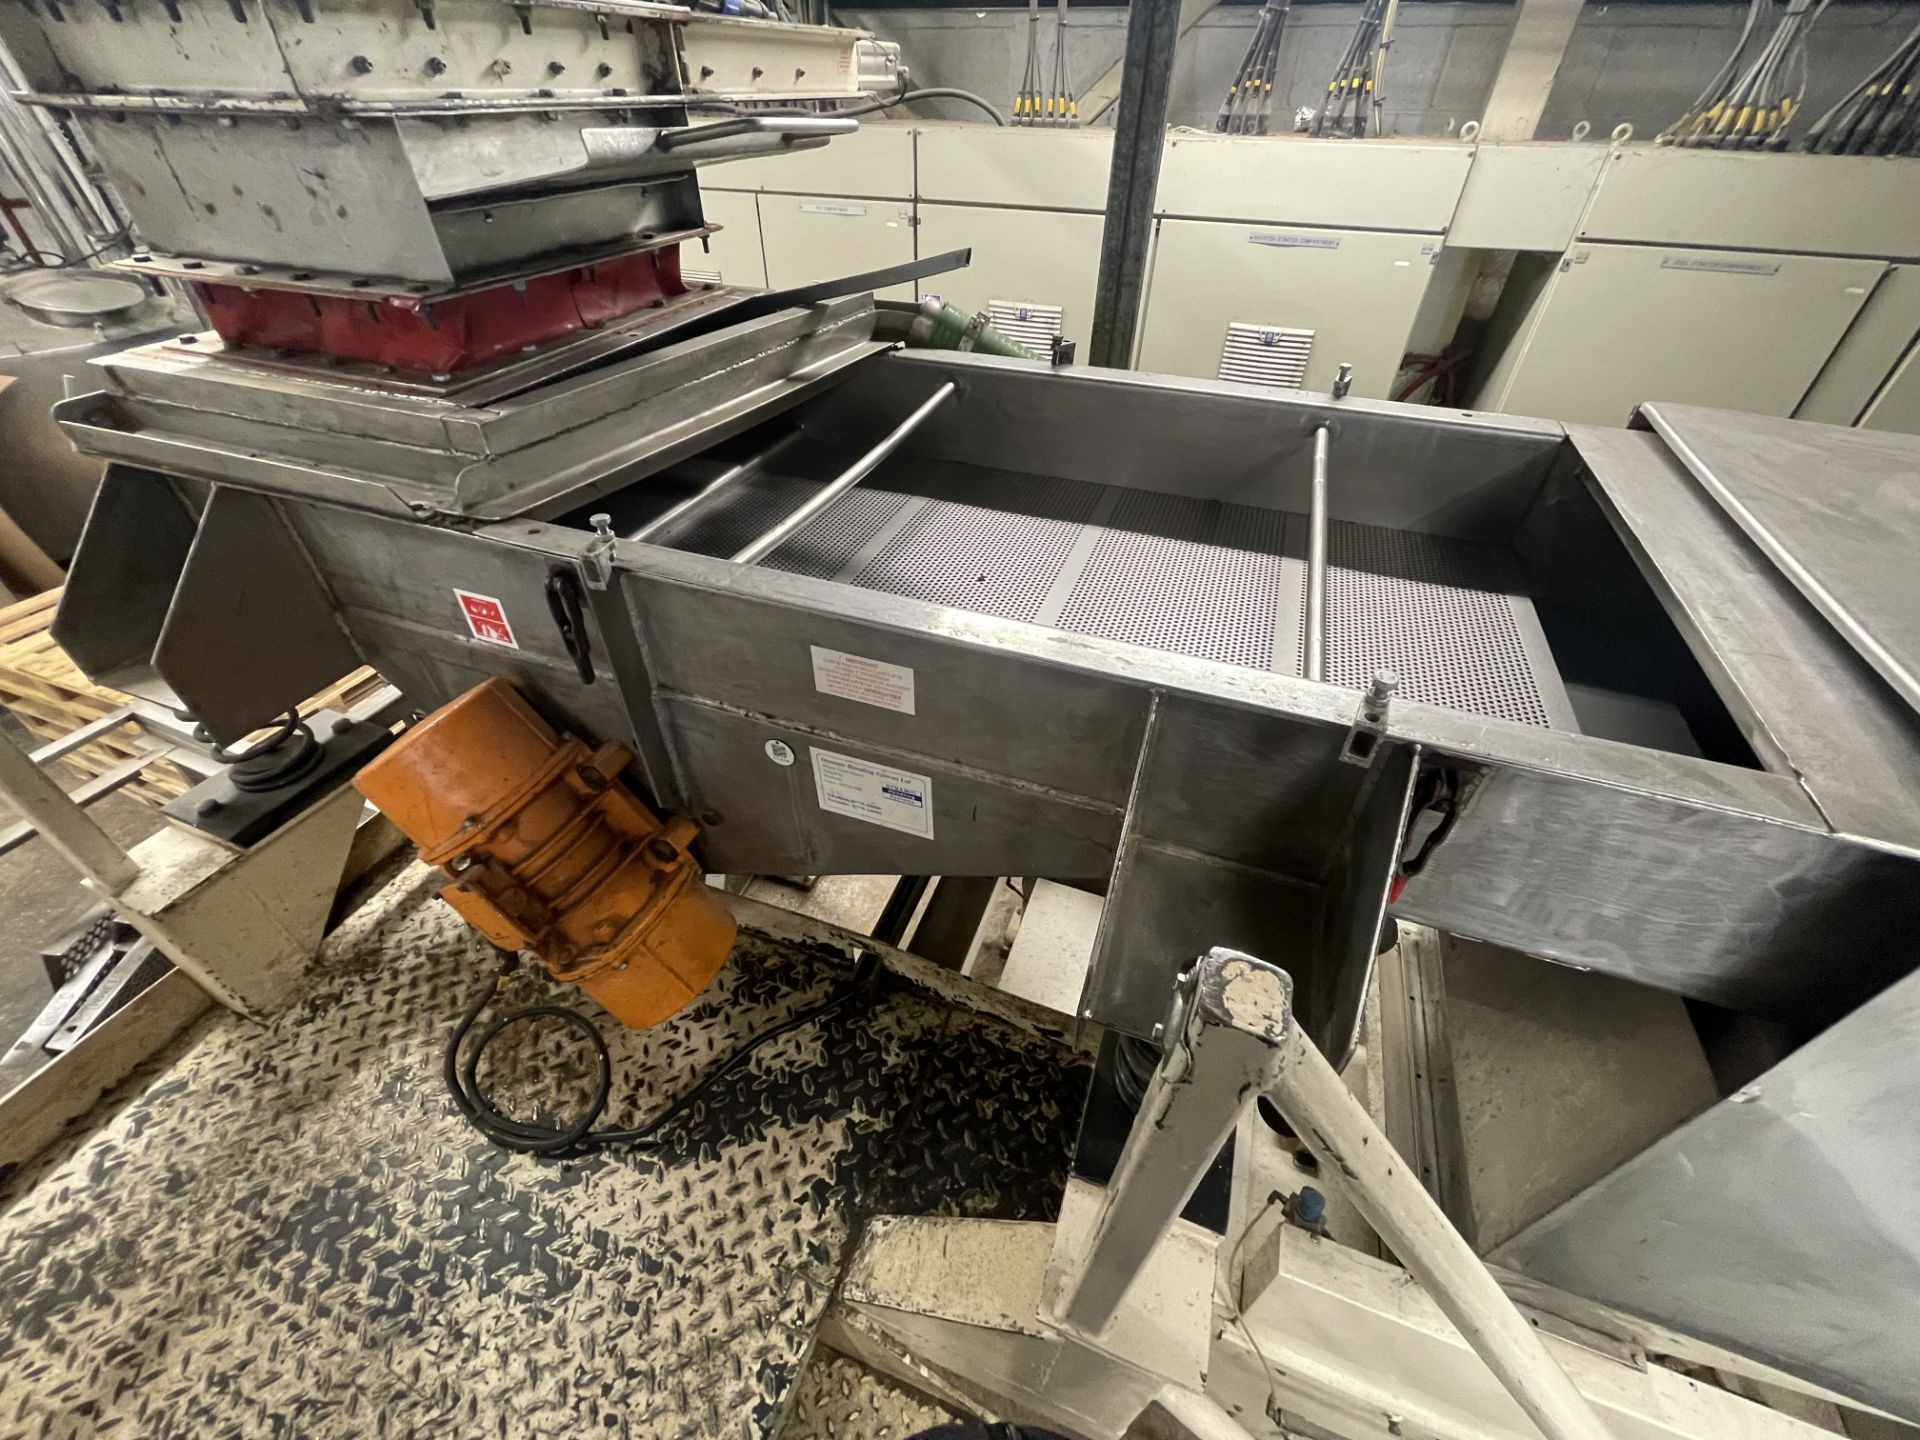 Pet Food Blending Line c/w Wynveen PM 750LH Stainless Steel Double Shaft Paddle Mixer - Image 37 of 63